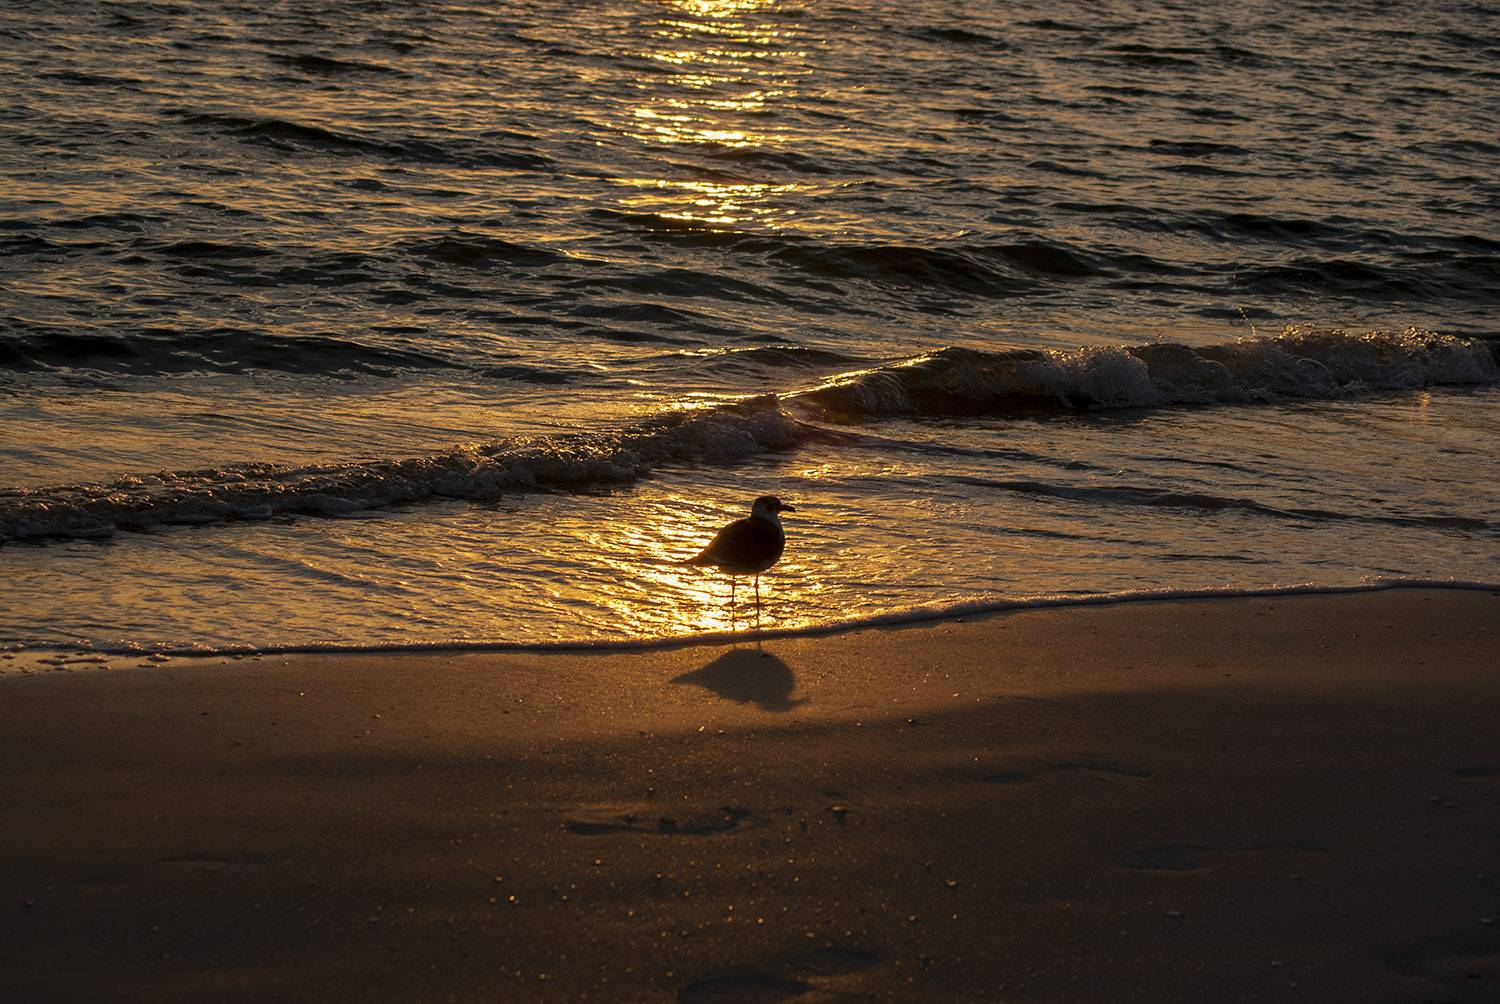 A sandpiper creates a silhouette during the sunset on the beach at Sanibel Island, Florida.